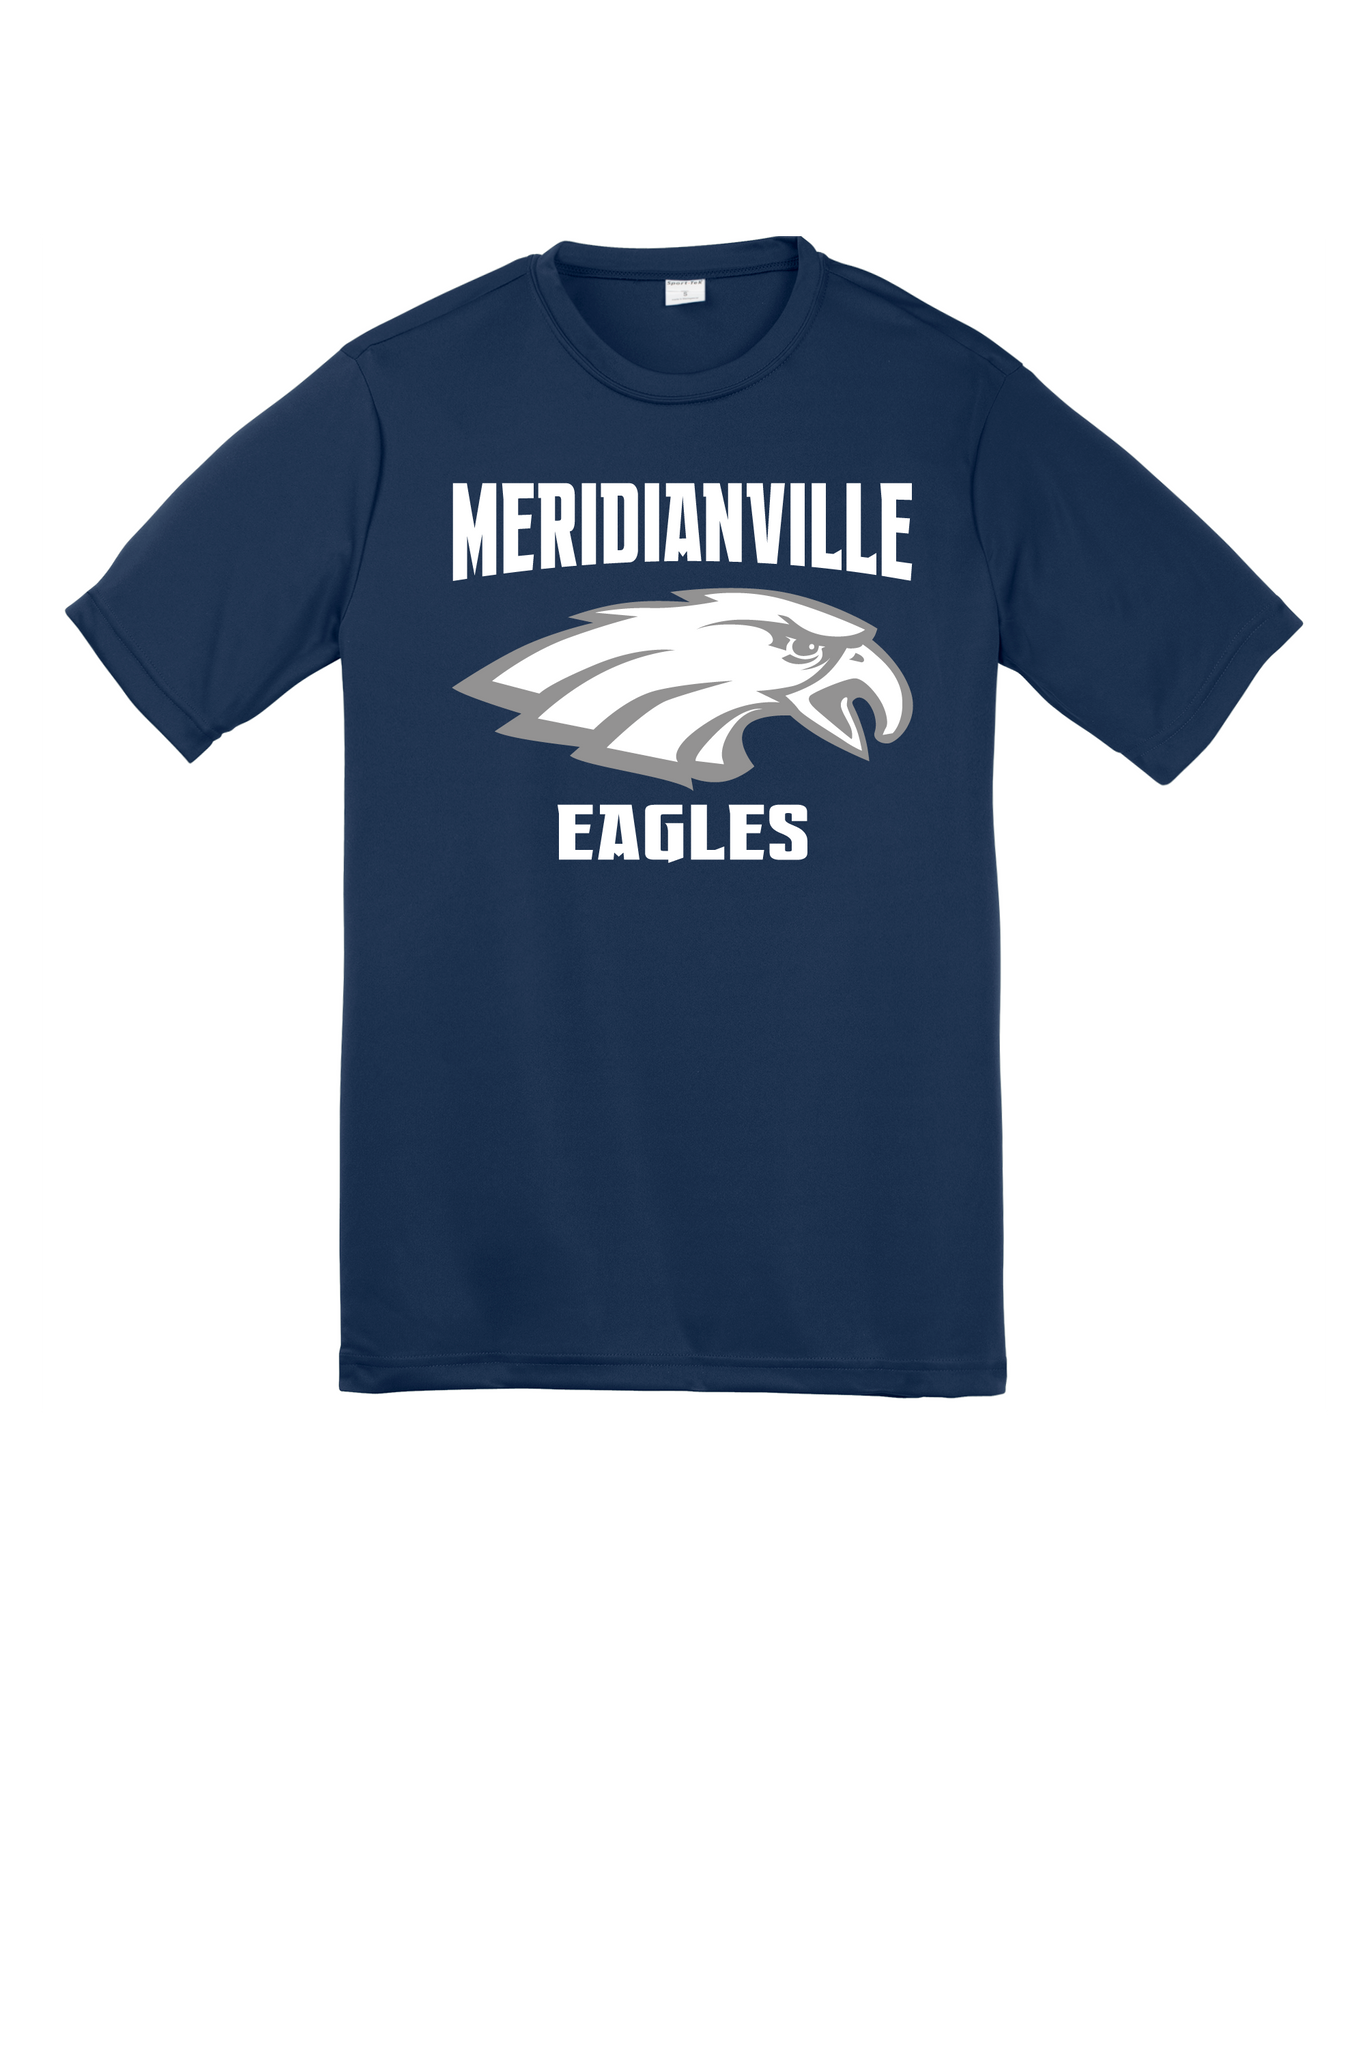 Cotton t-shirt for the family - Meridianville Eagles front logo